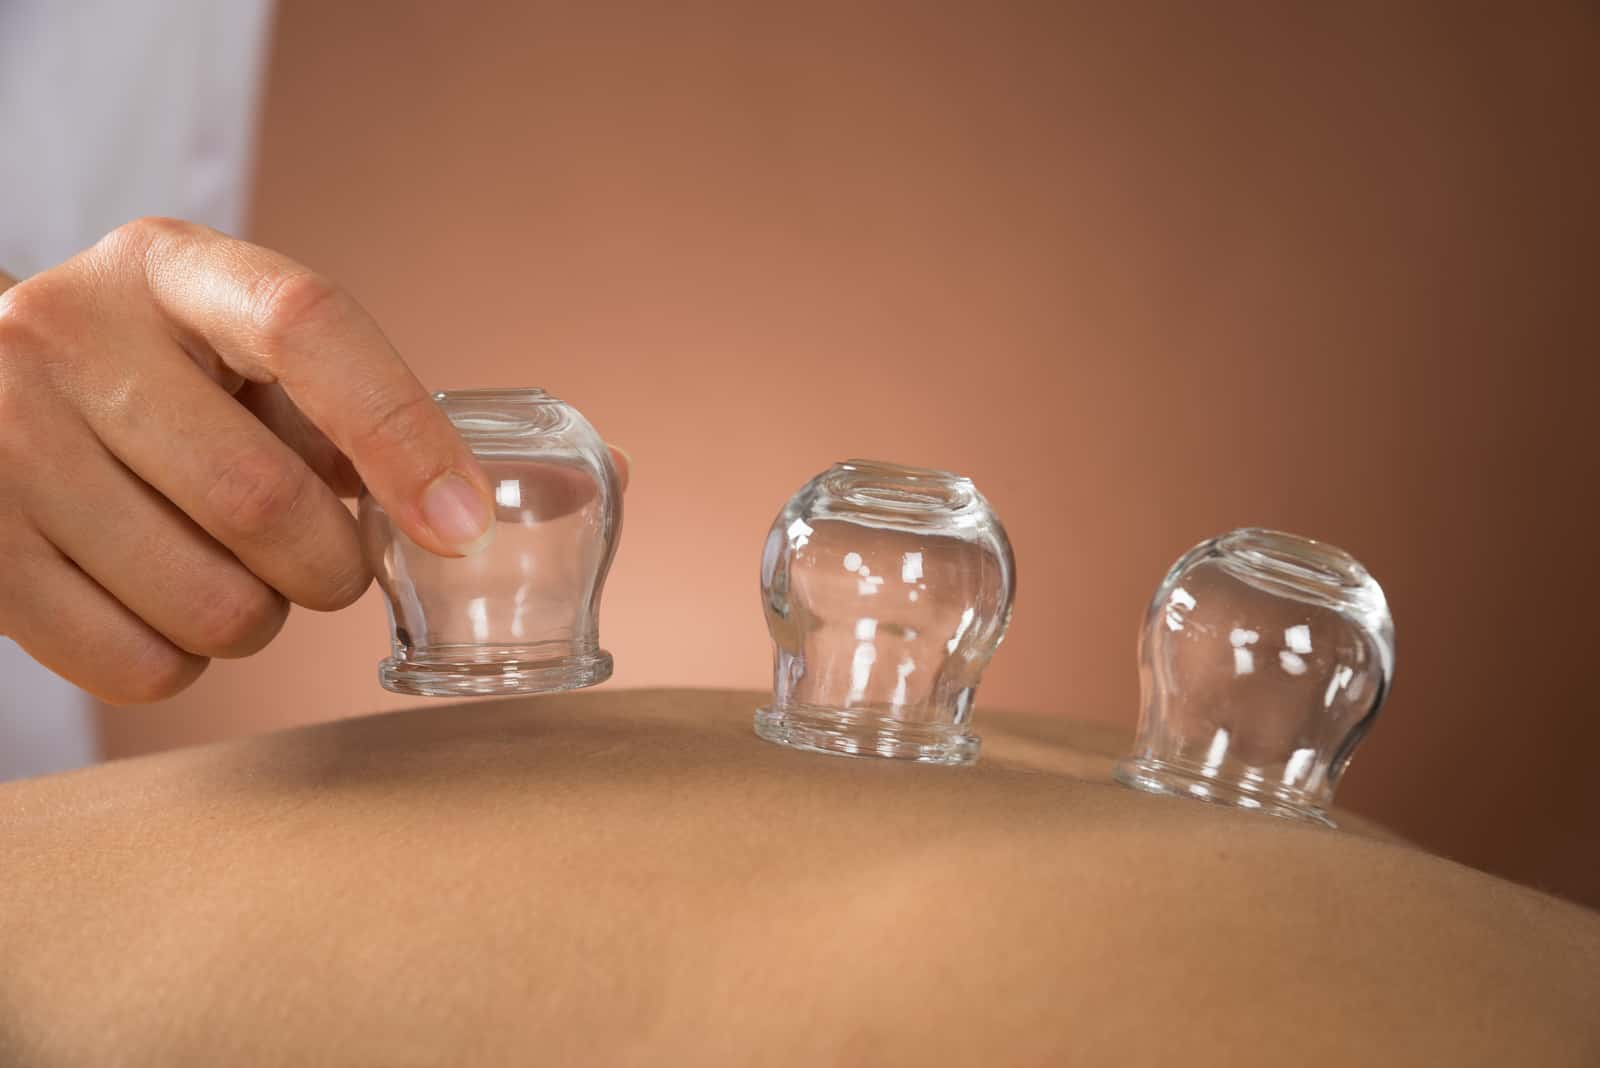 Combining Iastm With Cupping And Manual Therapy